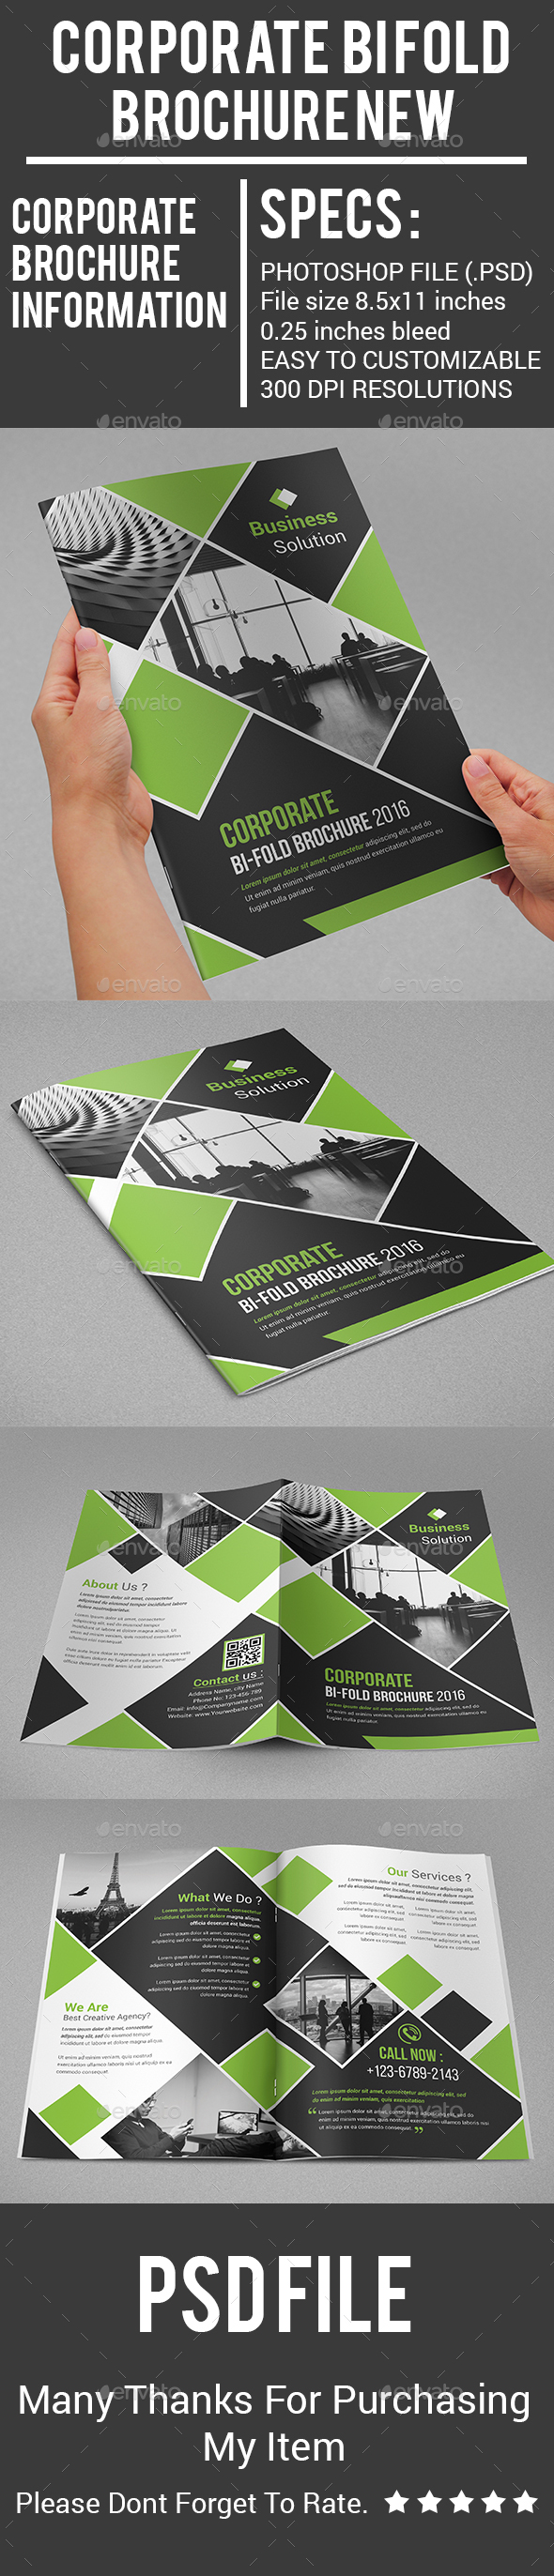 Corporate Bi Fold Brochure New - Corporate Brochures